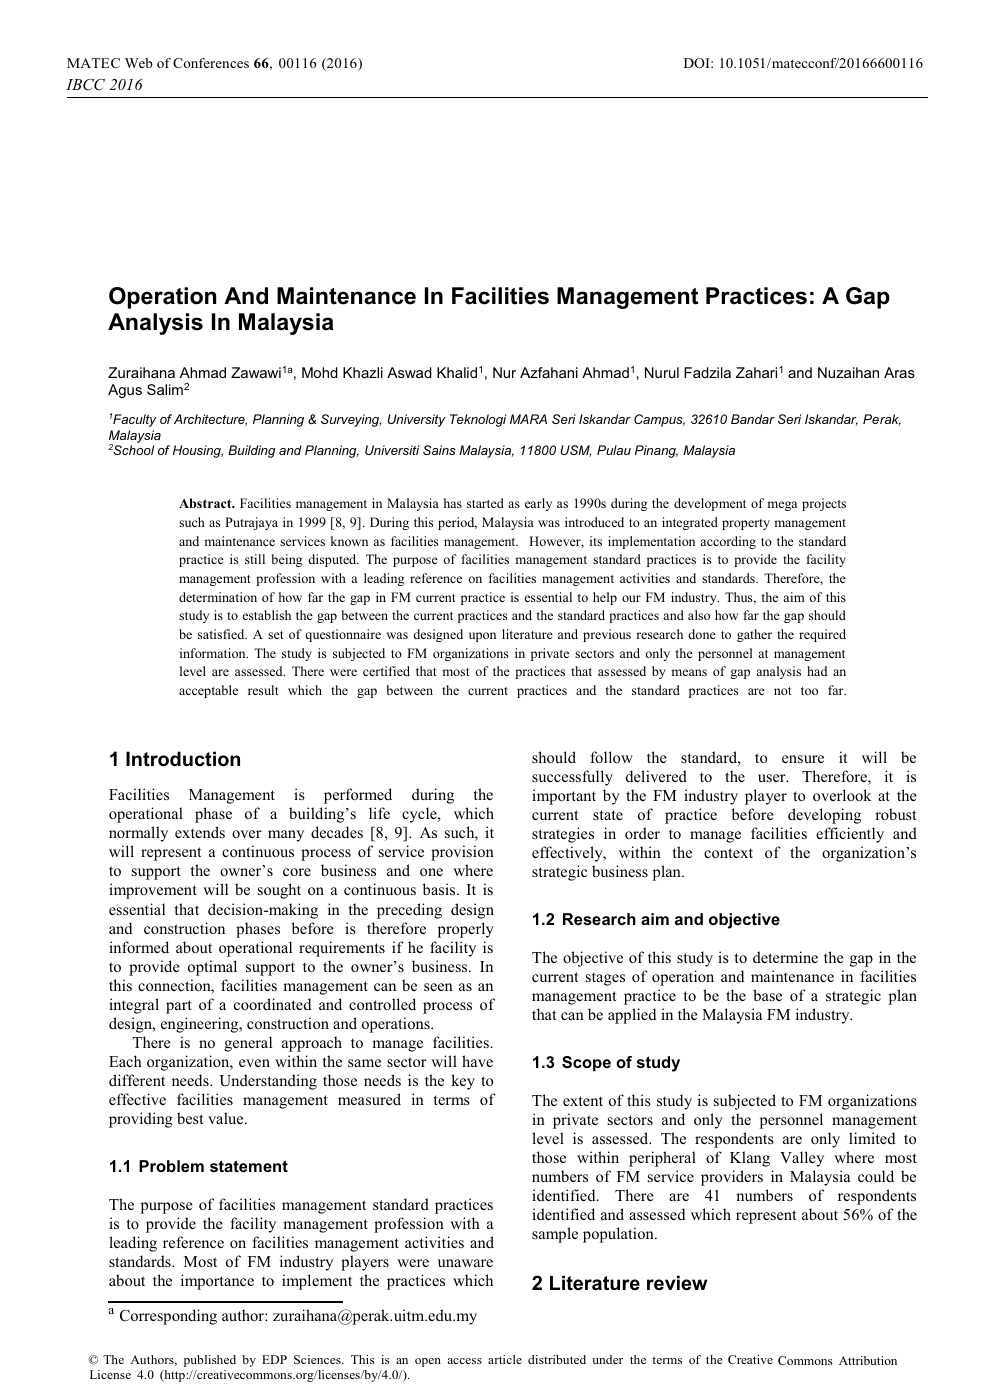 Operation And Maintenance In Facilities Management Practices A Gap Analysis In Malaysia Topic Of Research Paper In Economics And Business Download Scholarly Article Pdf And Read For Free On Cyberleninka Open